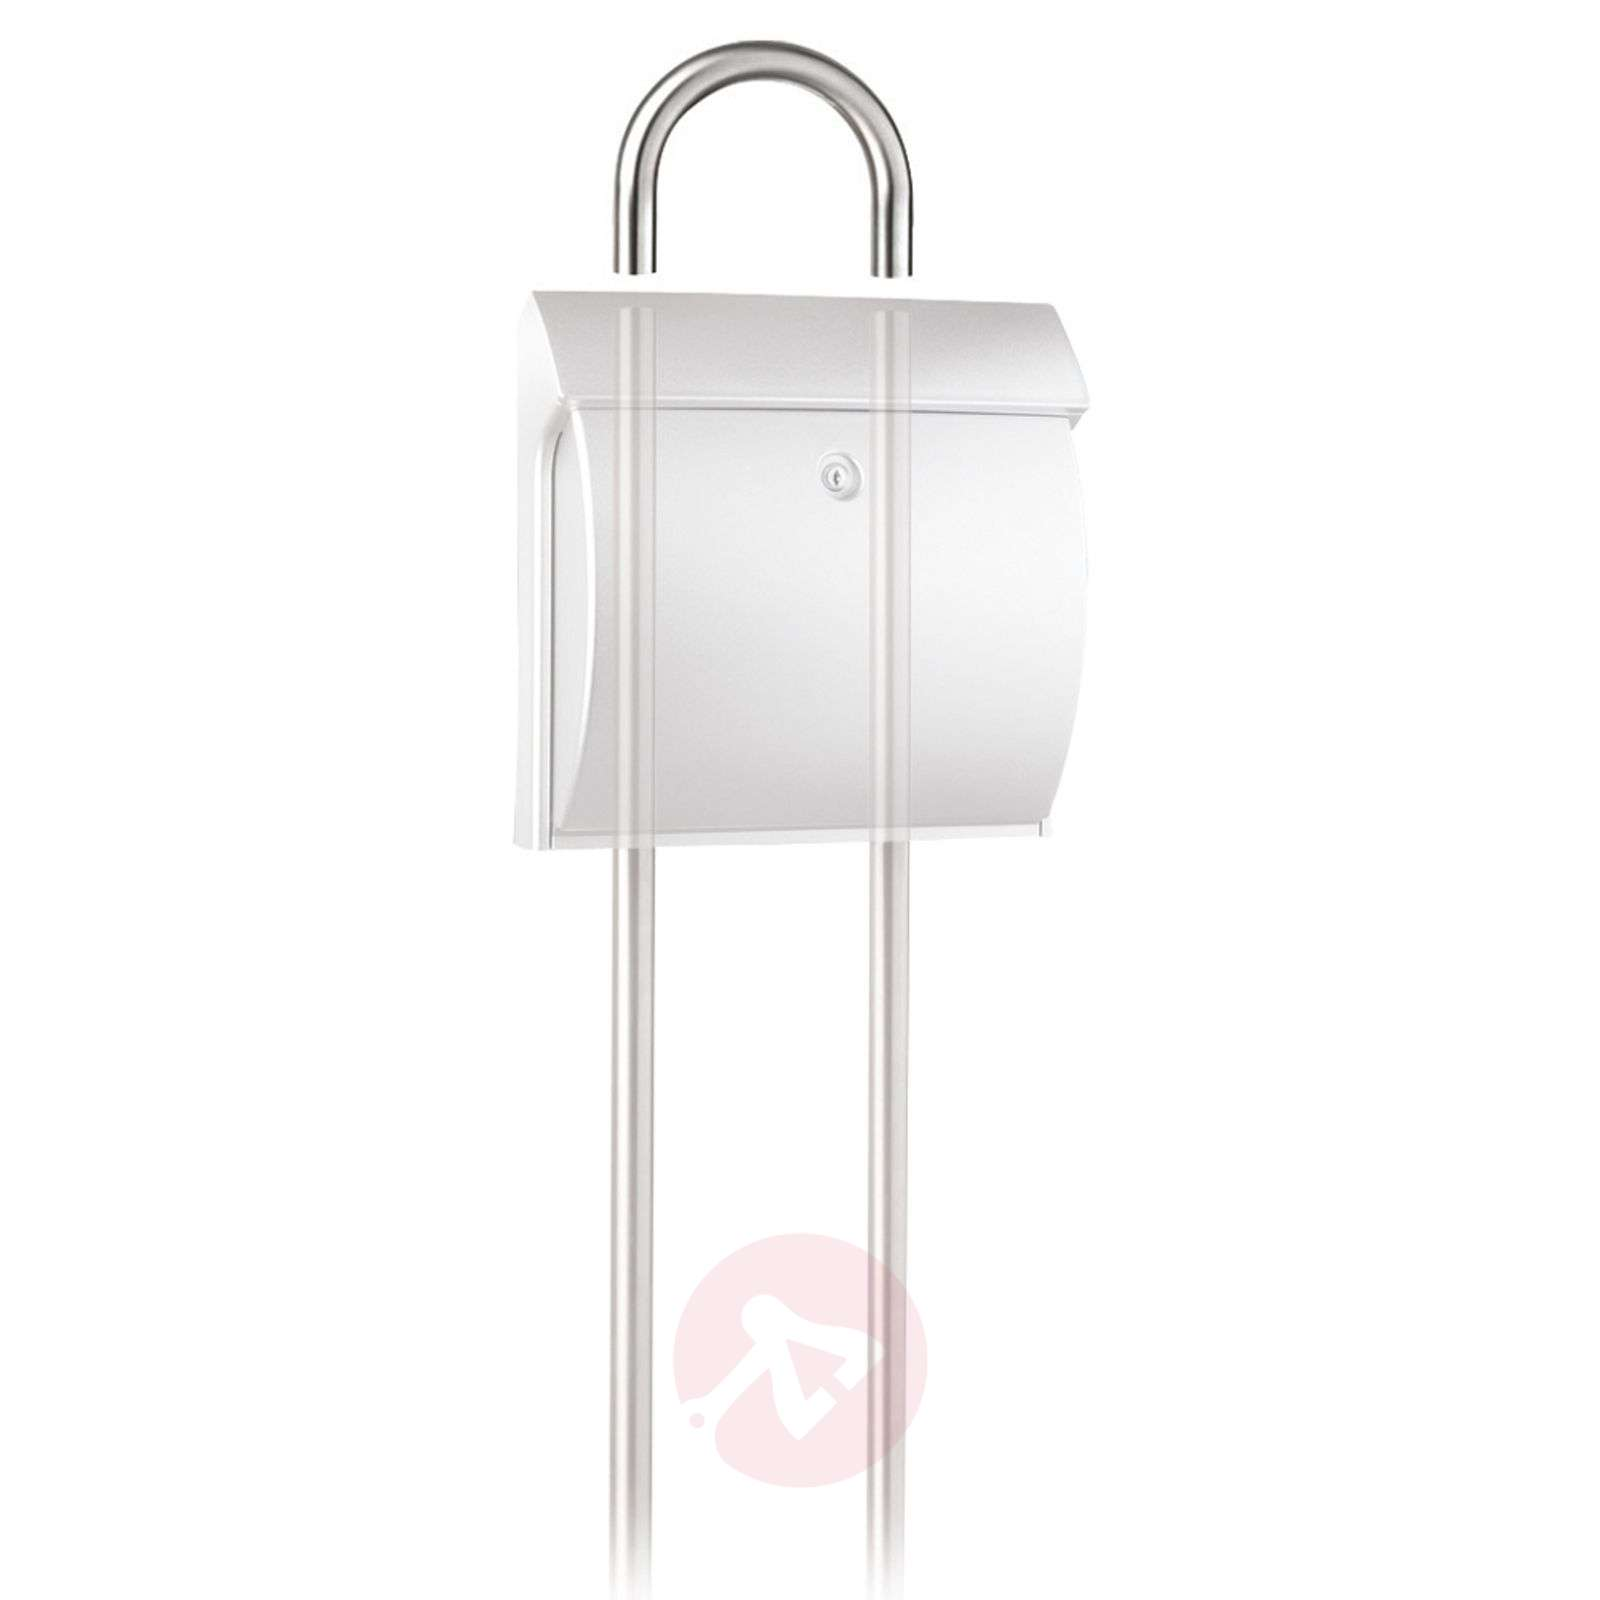 Universal 190 Ni stainless steel round arch-1532122-01